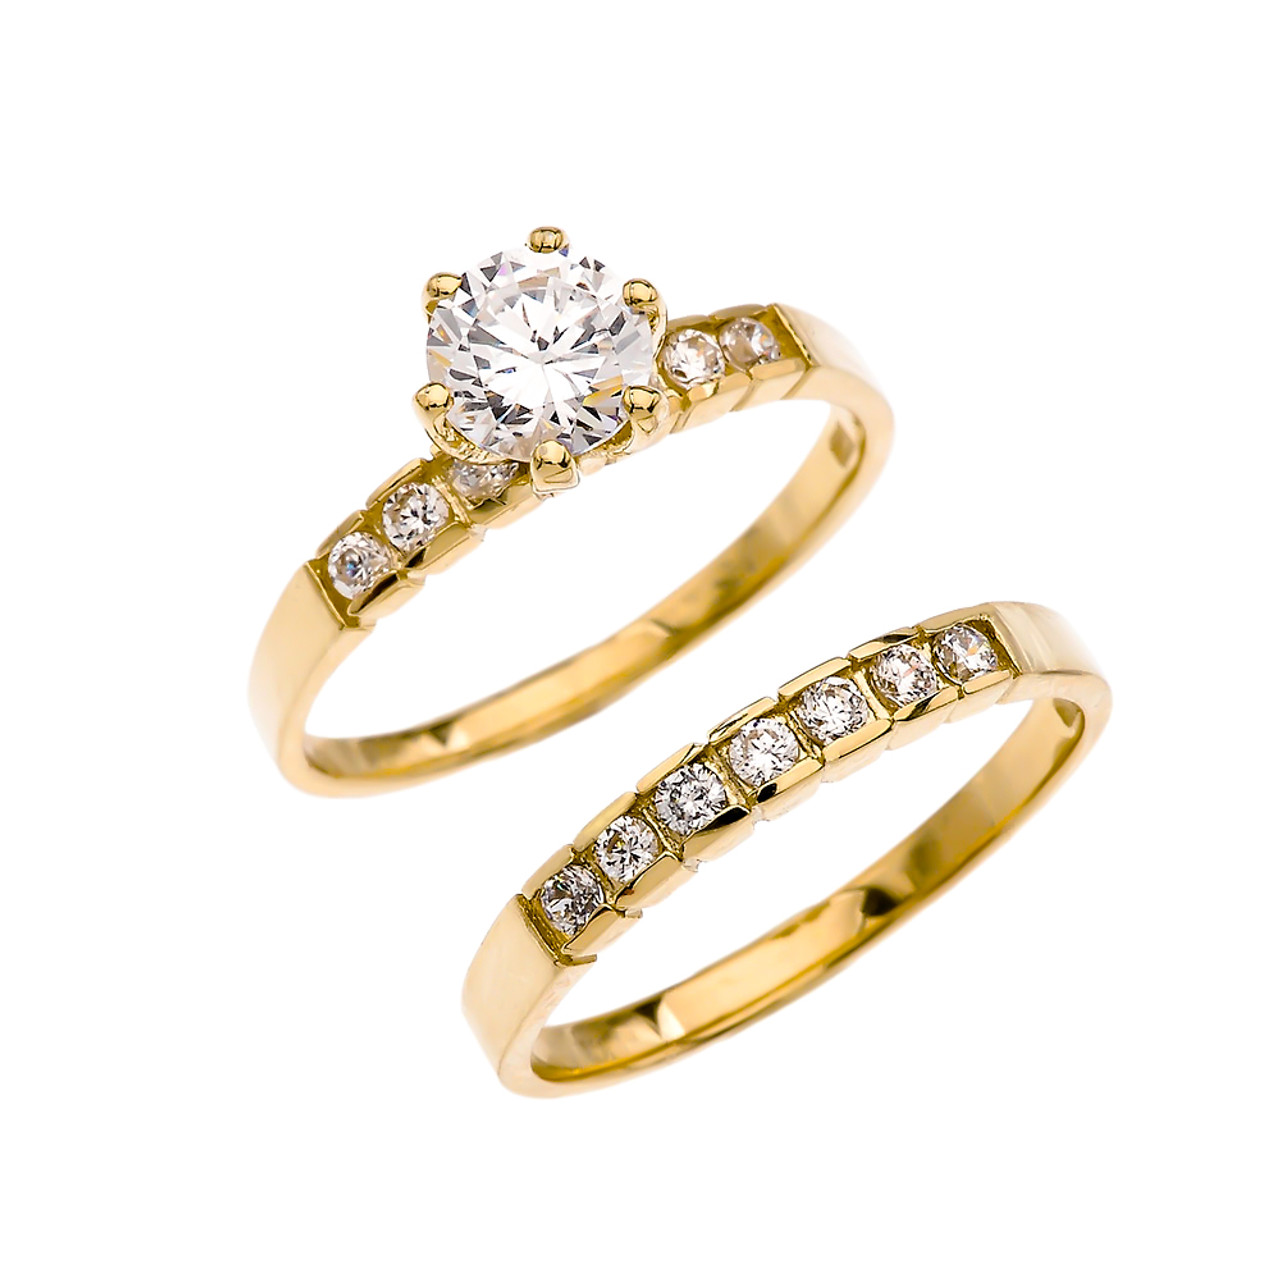 Diamond Yellow Gold Engagement And Wedding Ring Set With 1 Carat ...